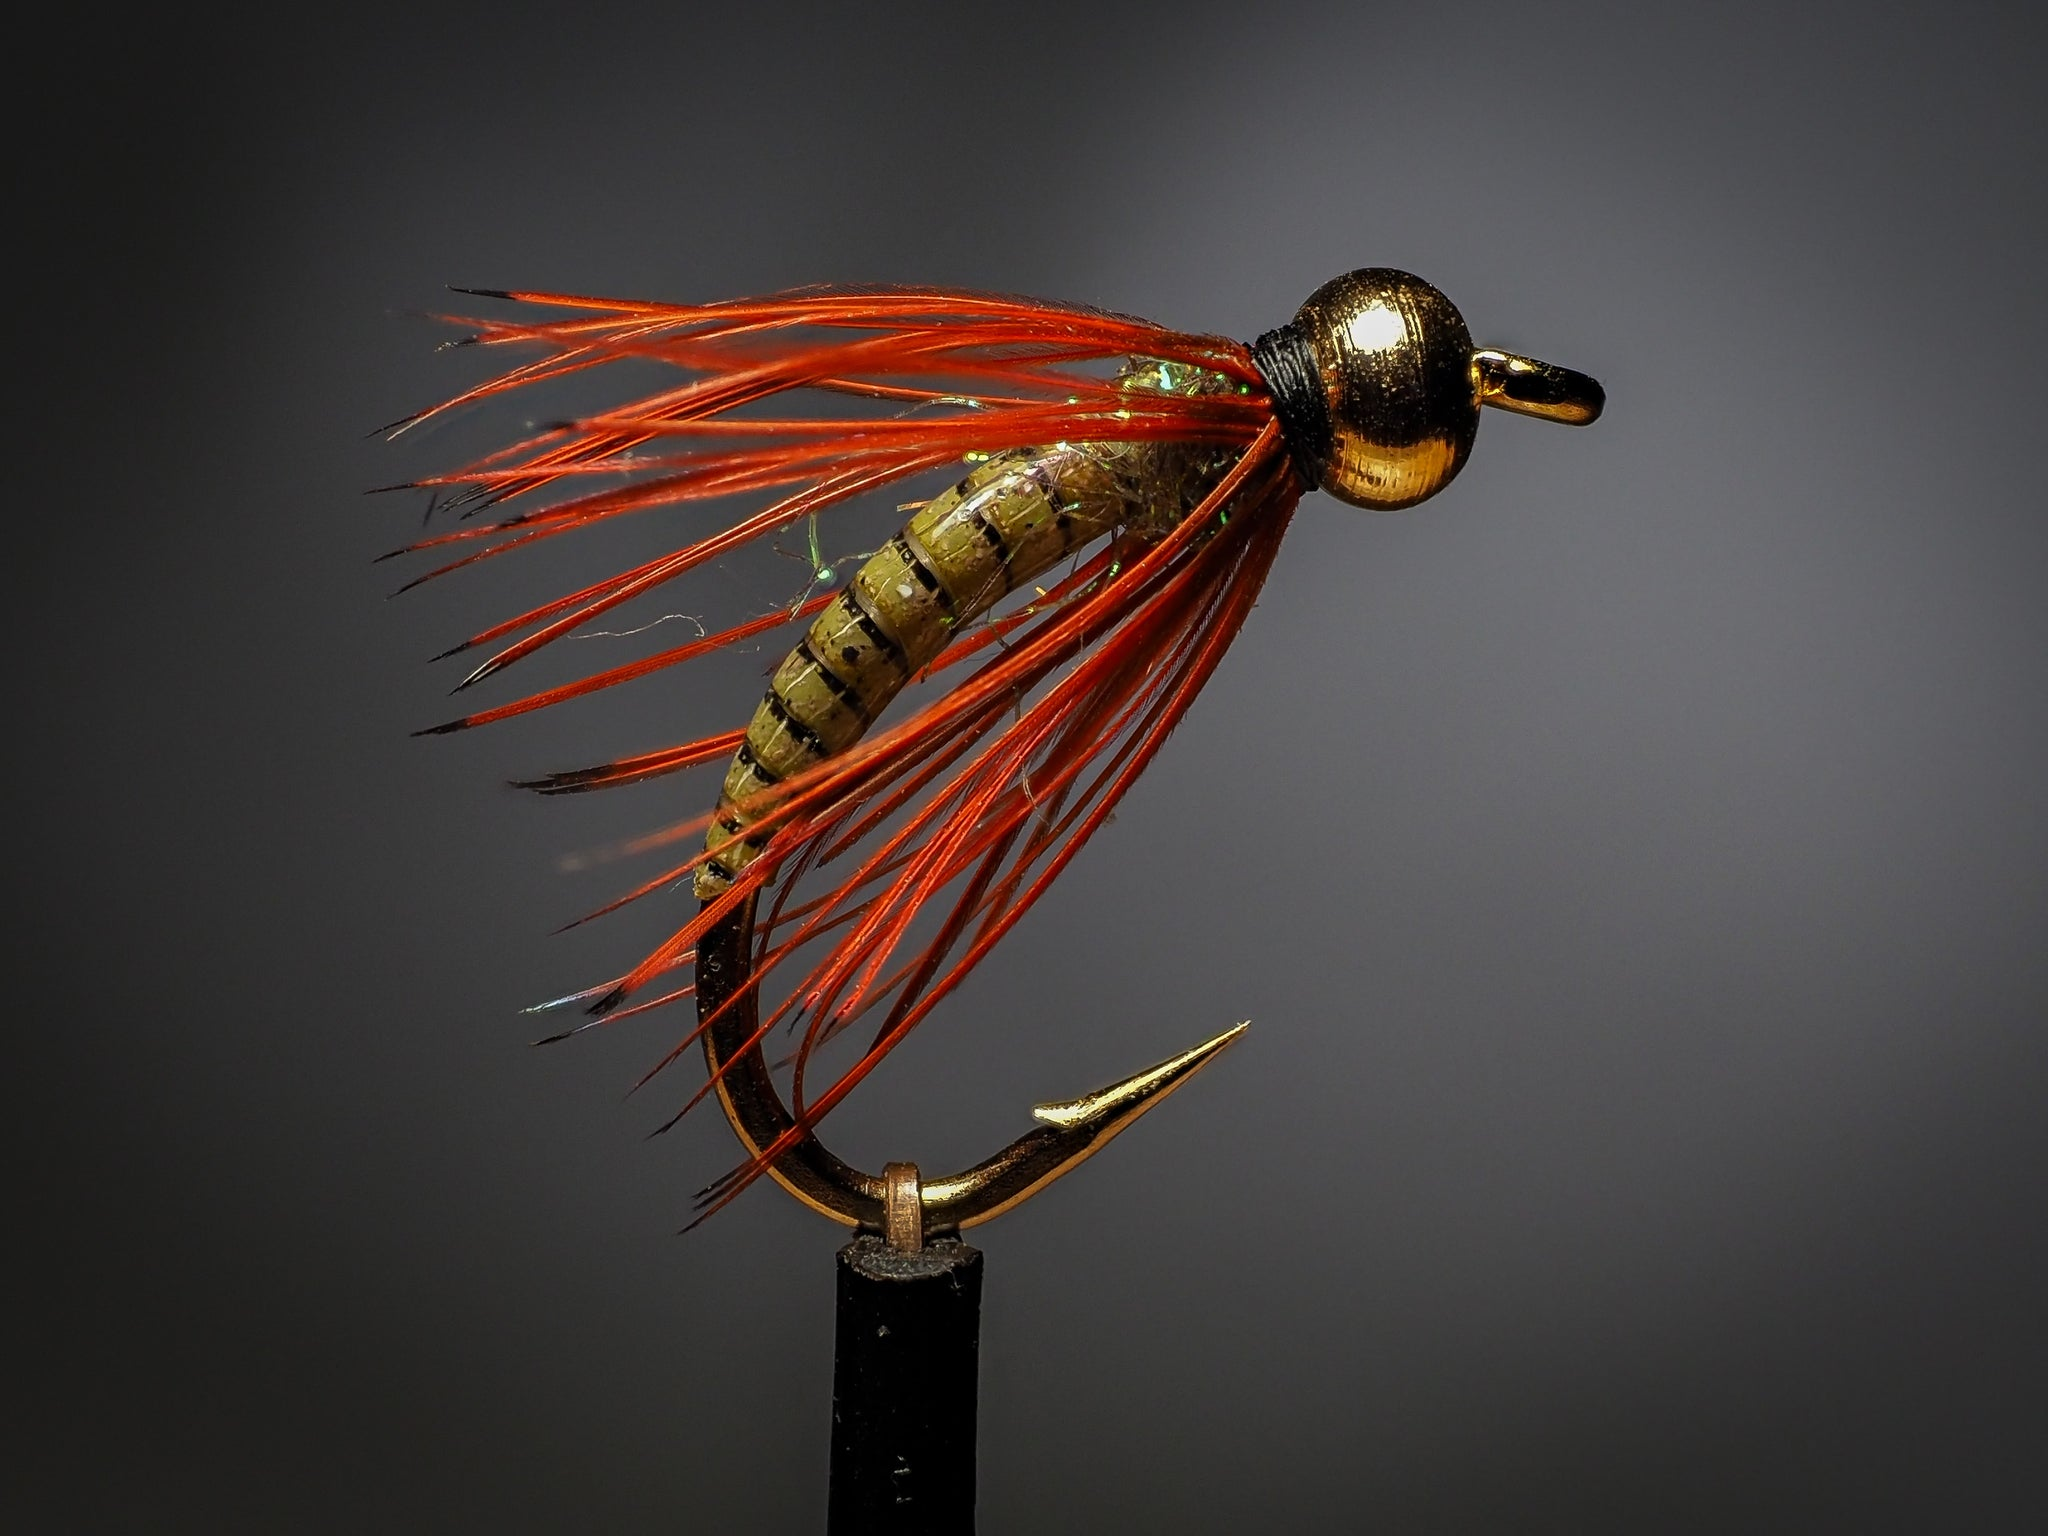 Fly Tying Interview with Garren Wood